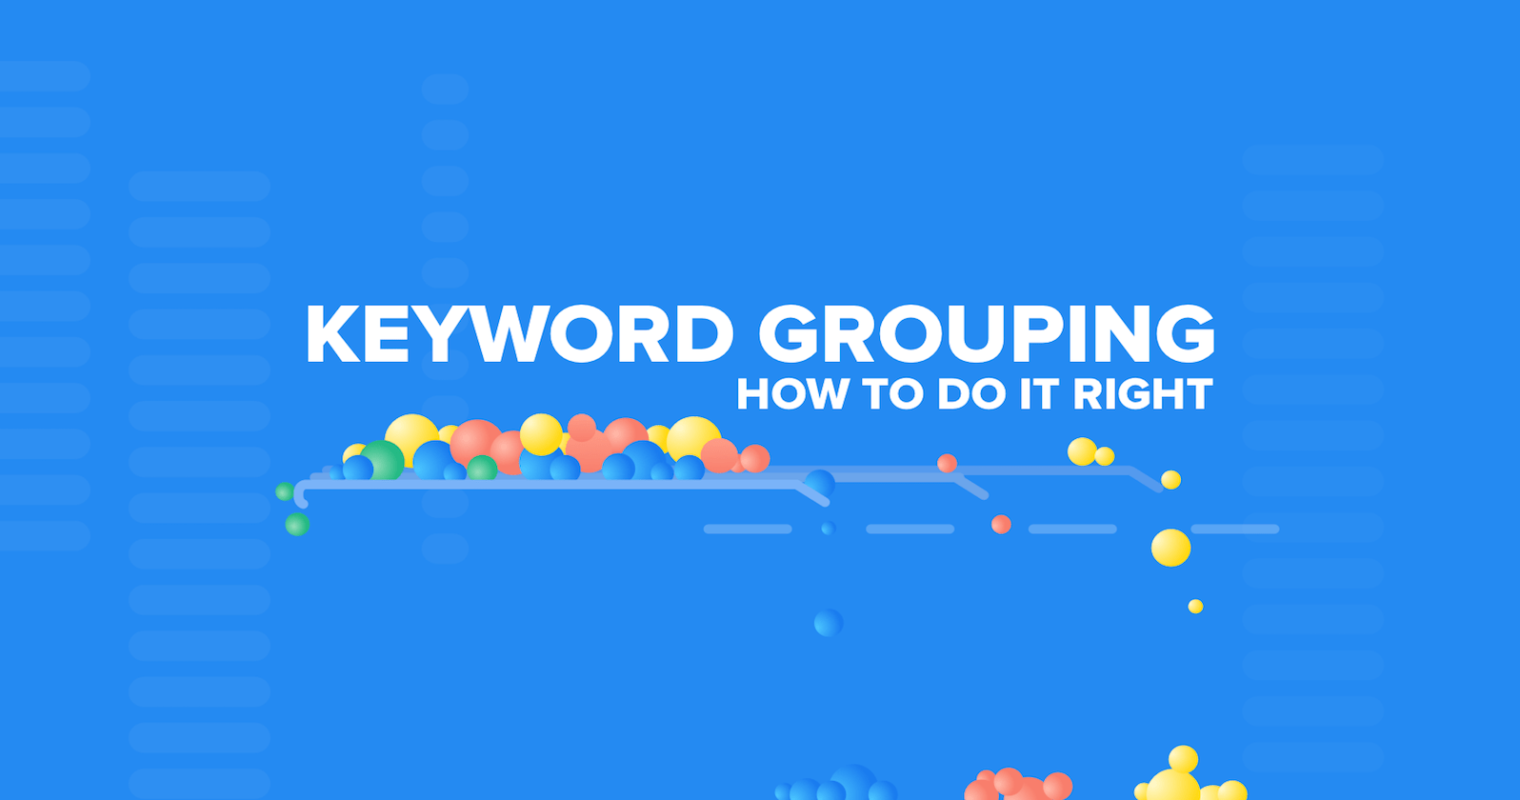 Keyword Grouping: Why You Need It & How to Do It Right